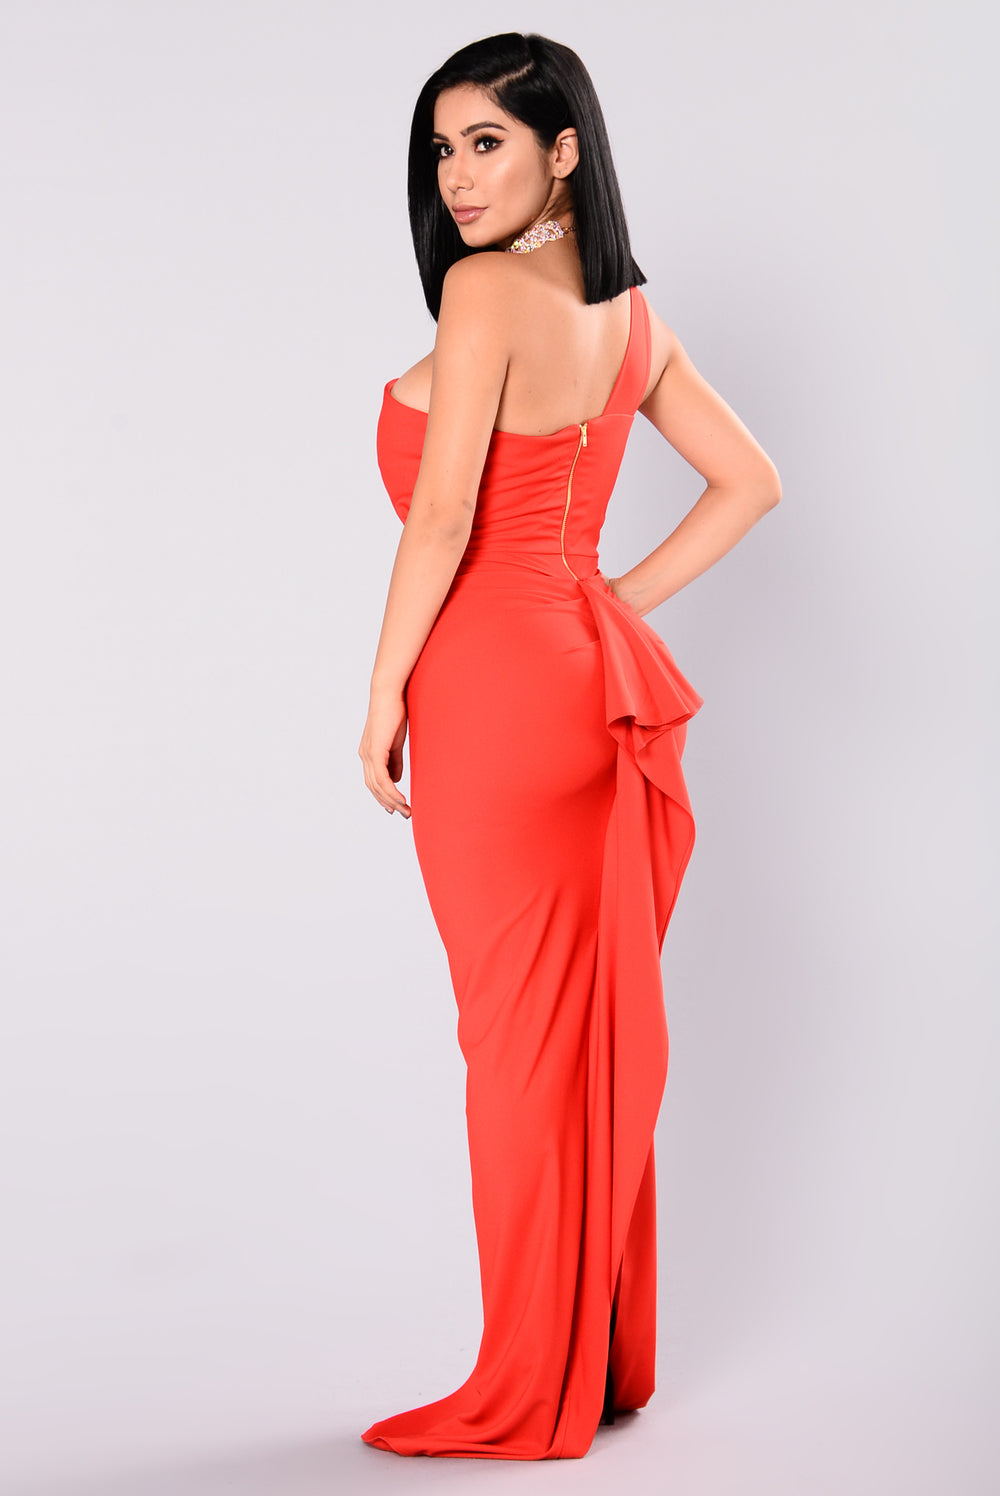 Affair Ruffle Dress - Red